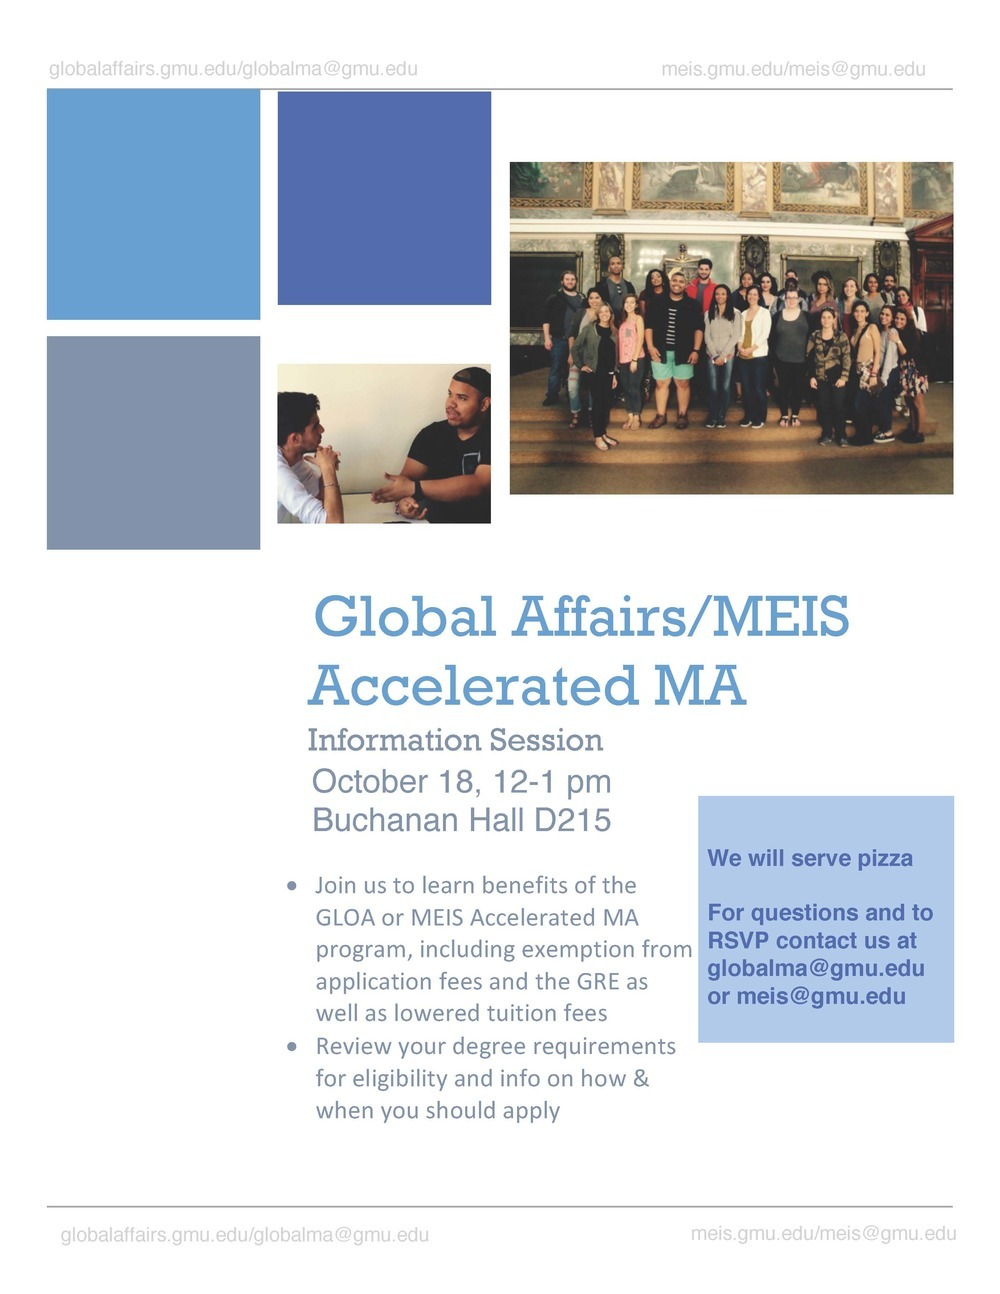 GLOA Accelerated Master's Information Session